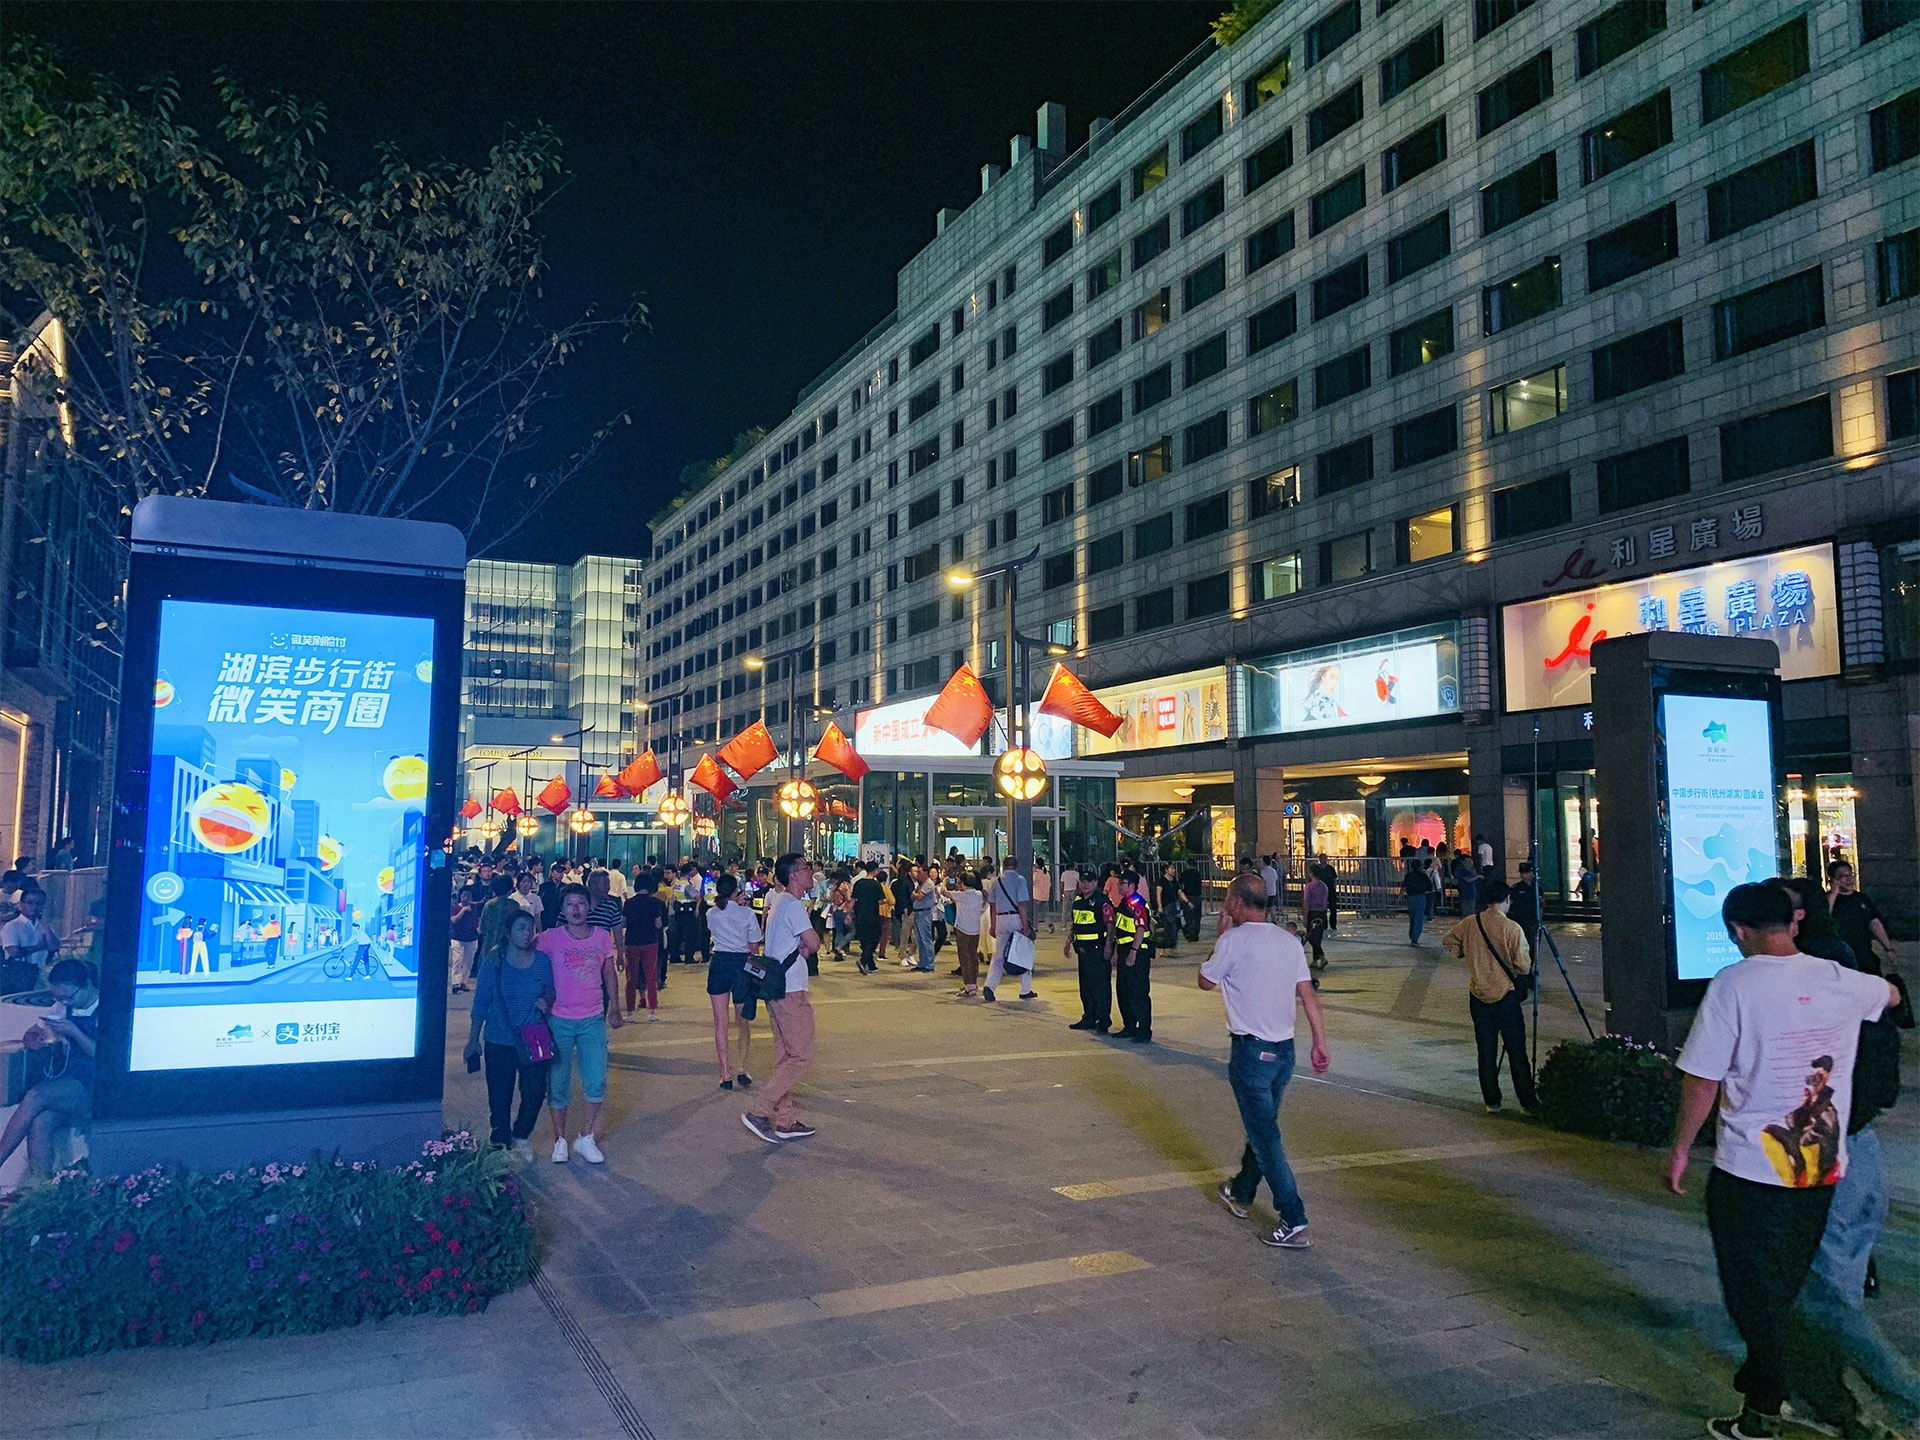 httpswww.betvis.combetvis-smart-outdoor-screens-light-up-the-city-of-hangzhou-6